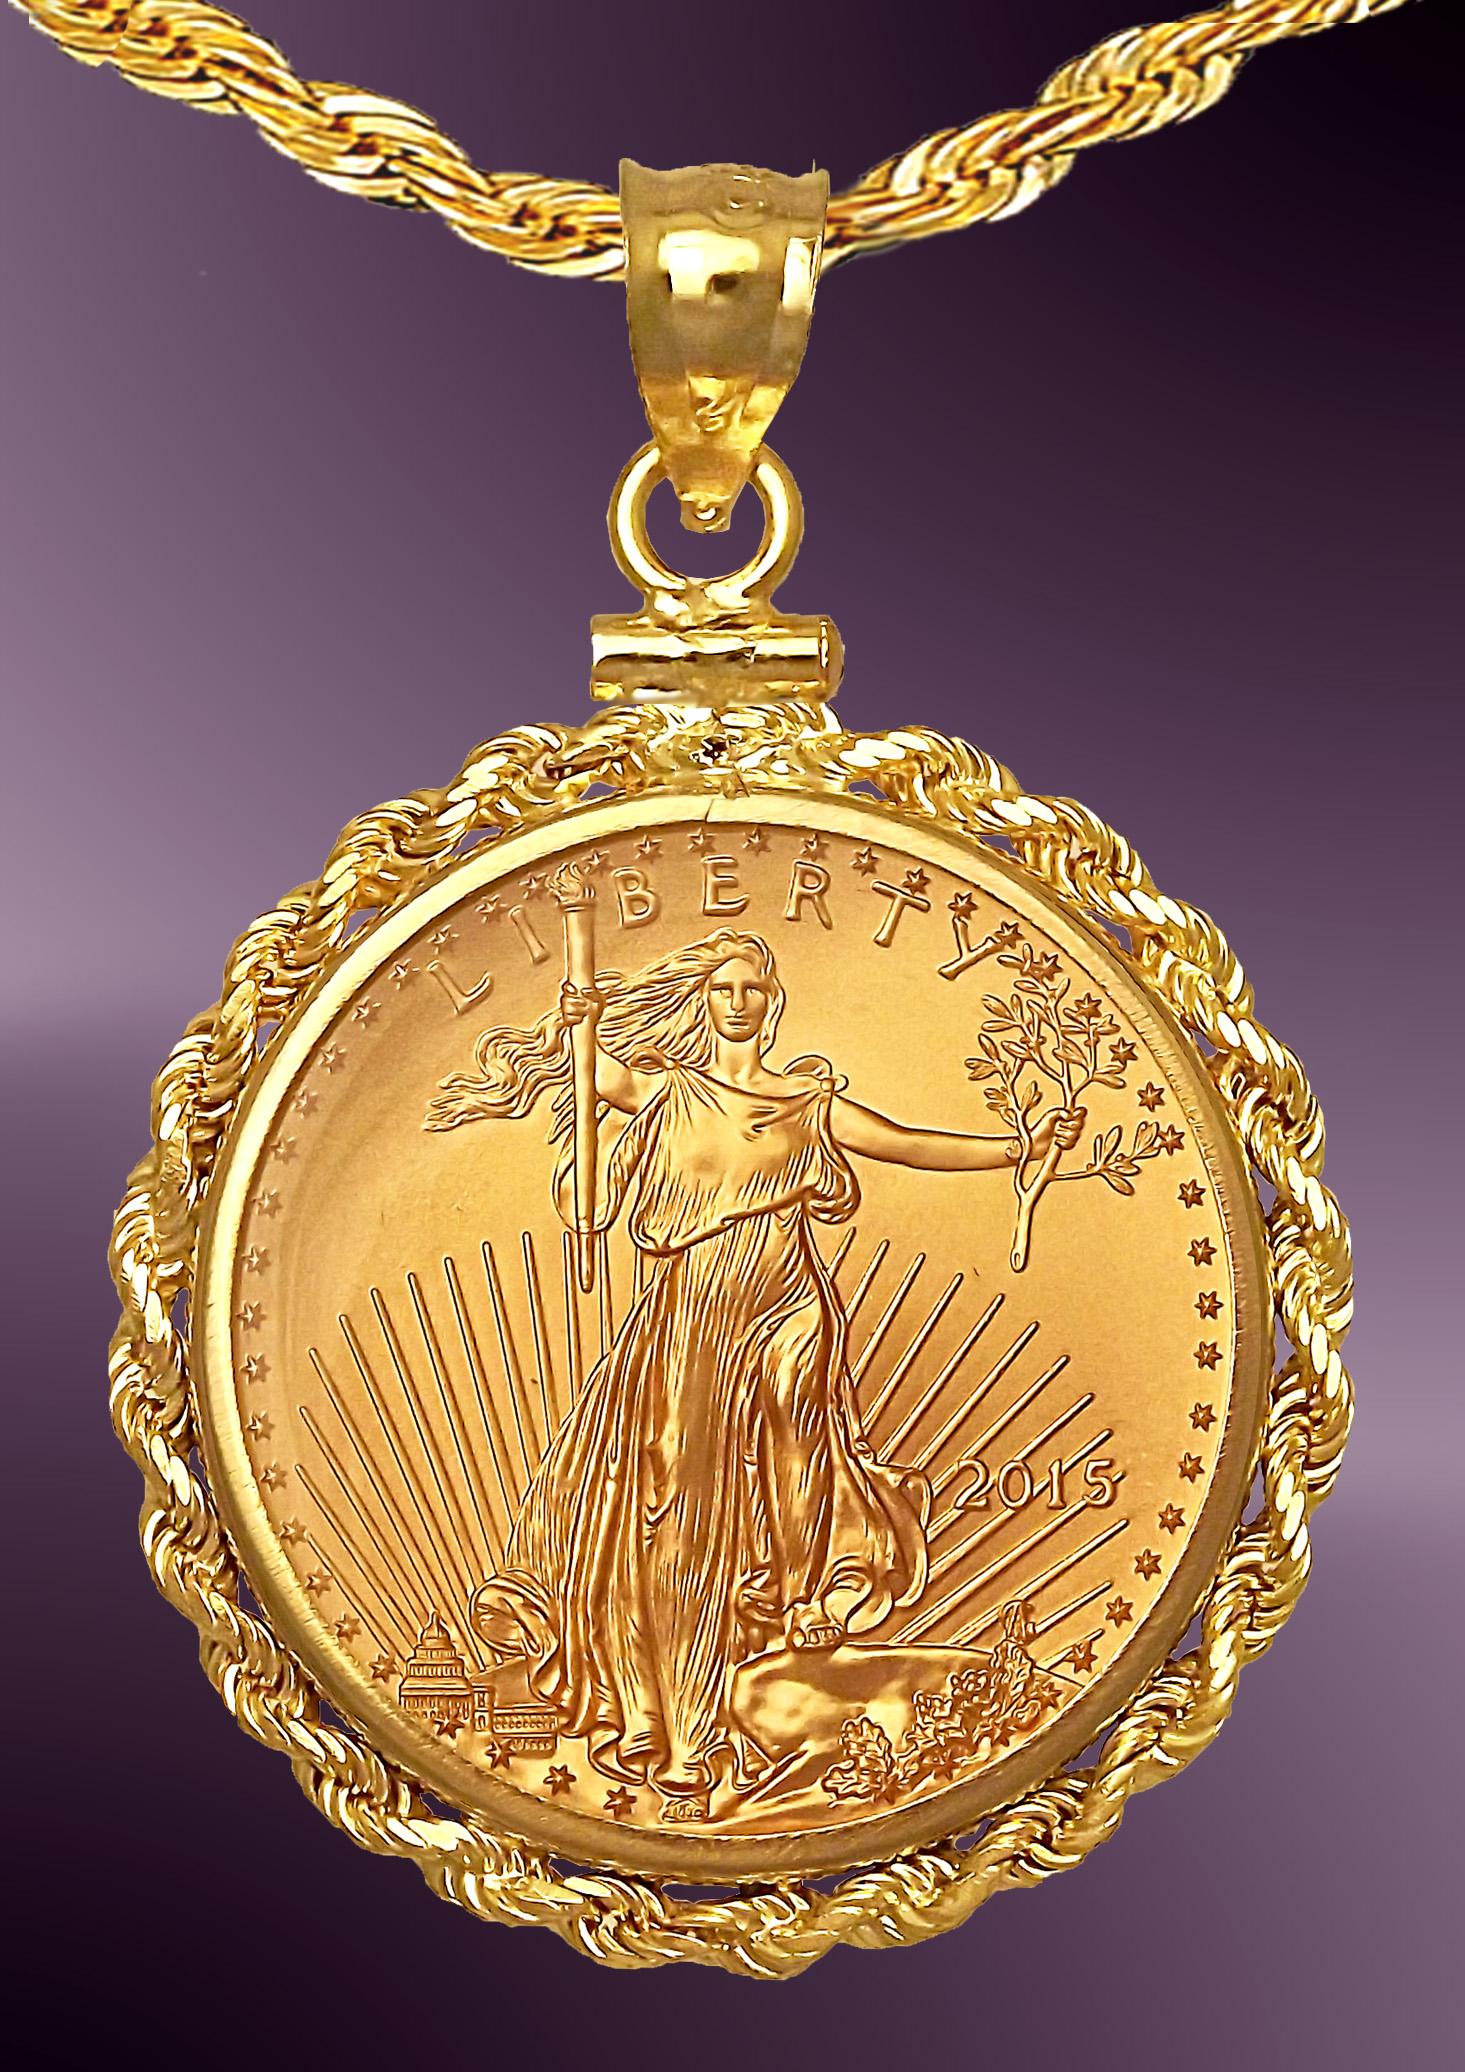 10 Dollar Gold Eagle Coin Rope Necklace NRR8-10E-C8